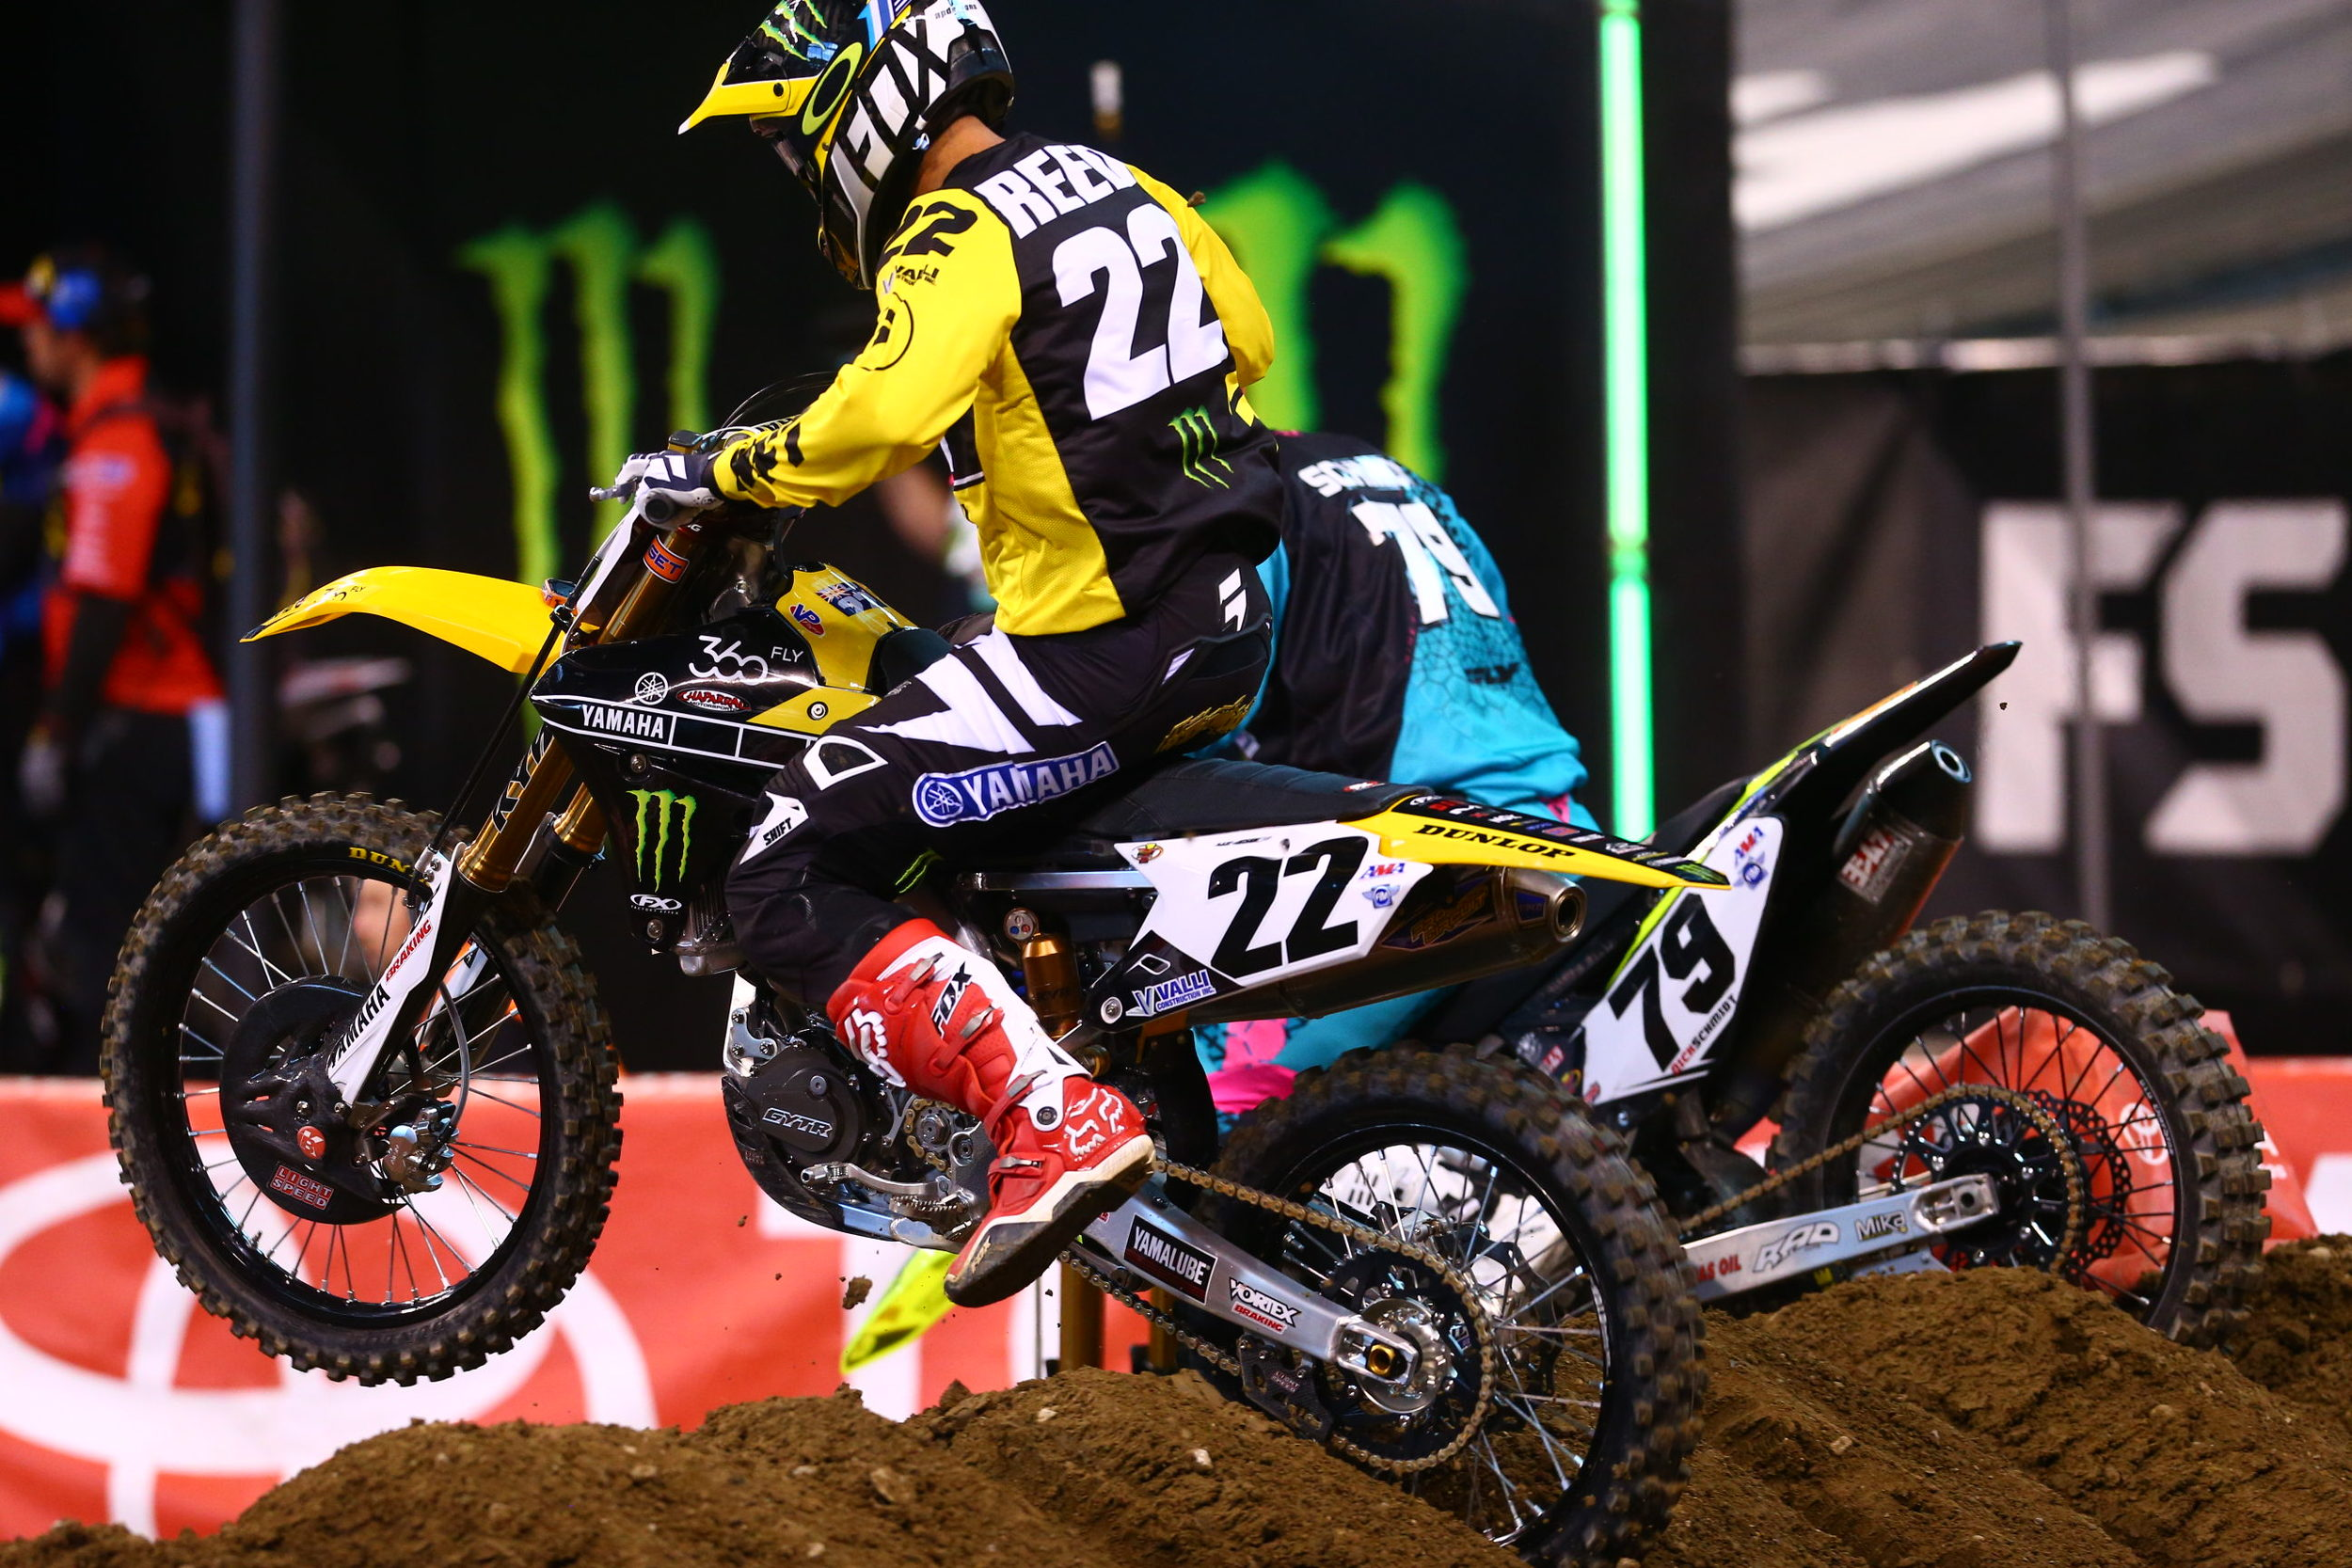 Chad Reed in retro Yamaha colors